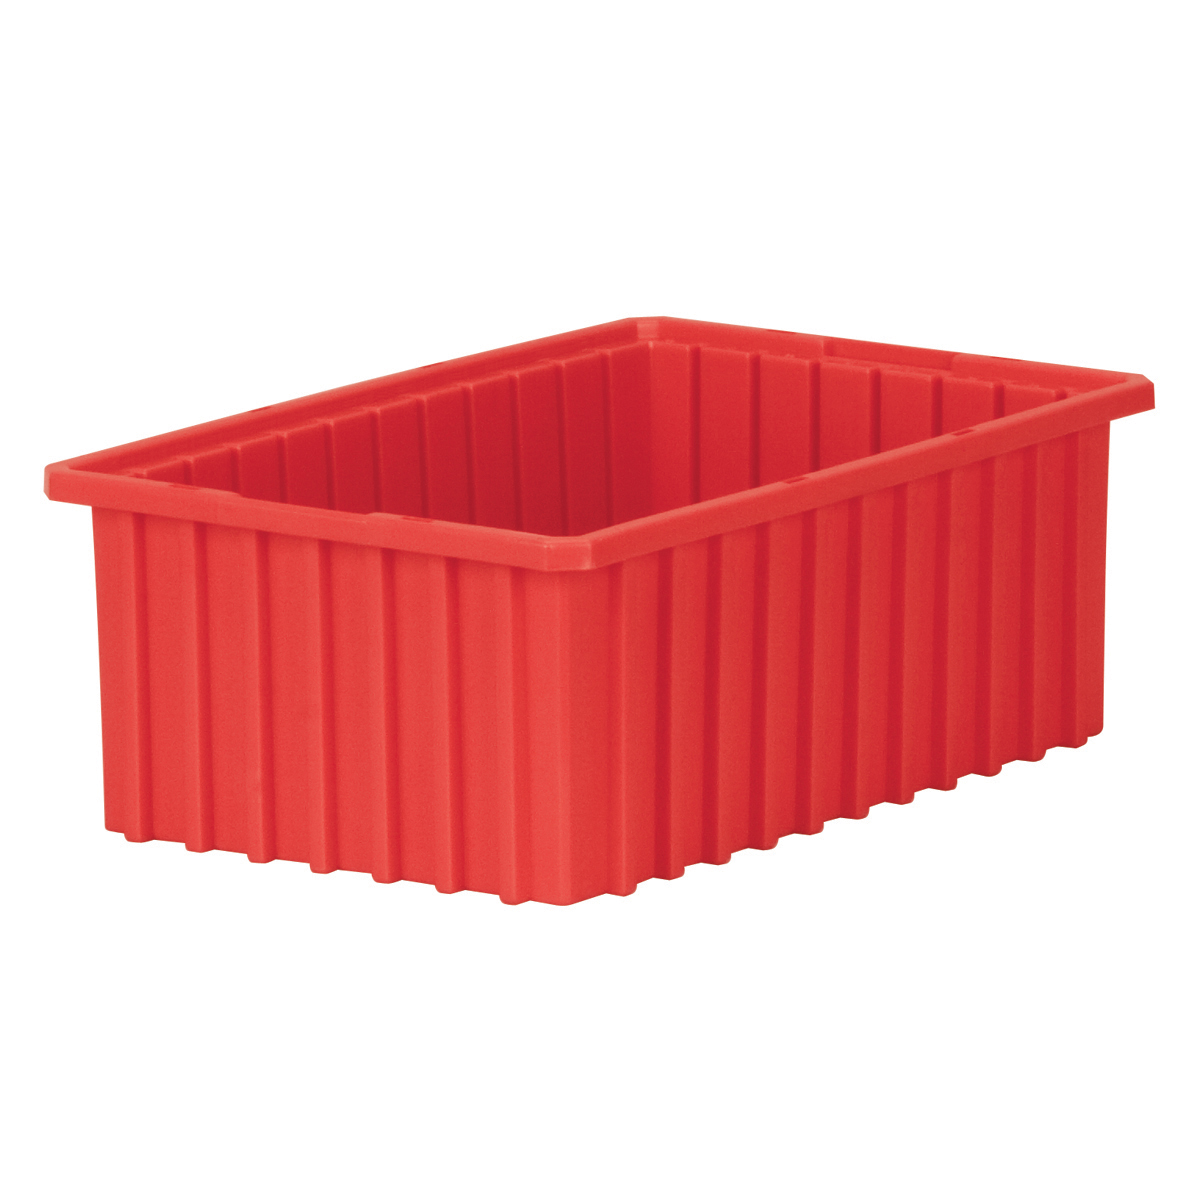 Akro-Grid Dividable Box 16-1/2 x 10-7/8 x 6, Red (33166RED).  This item sold in carton quantities of 8.